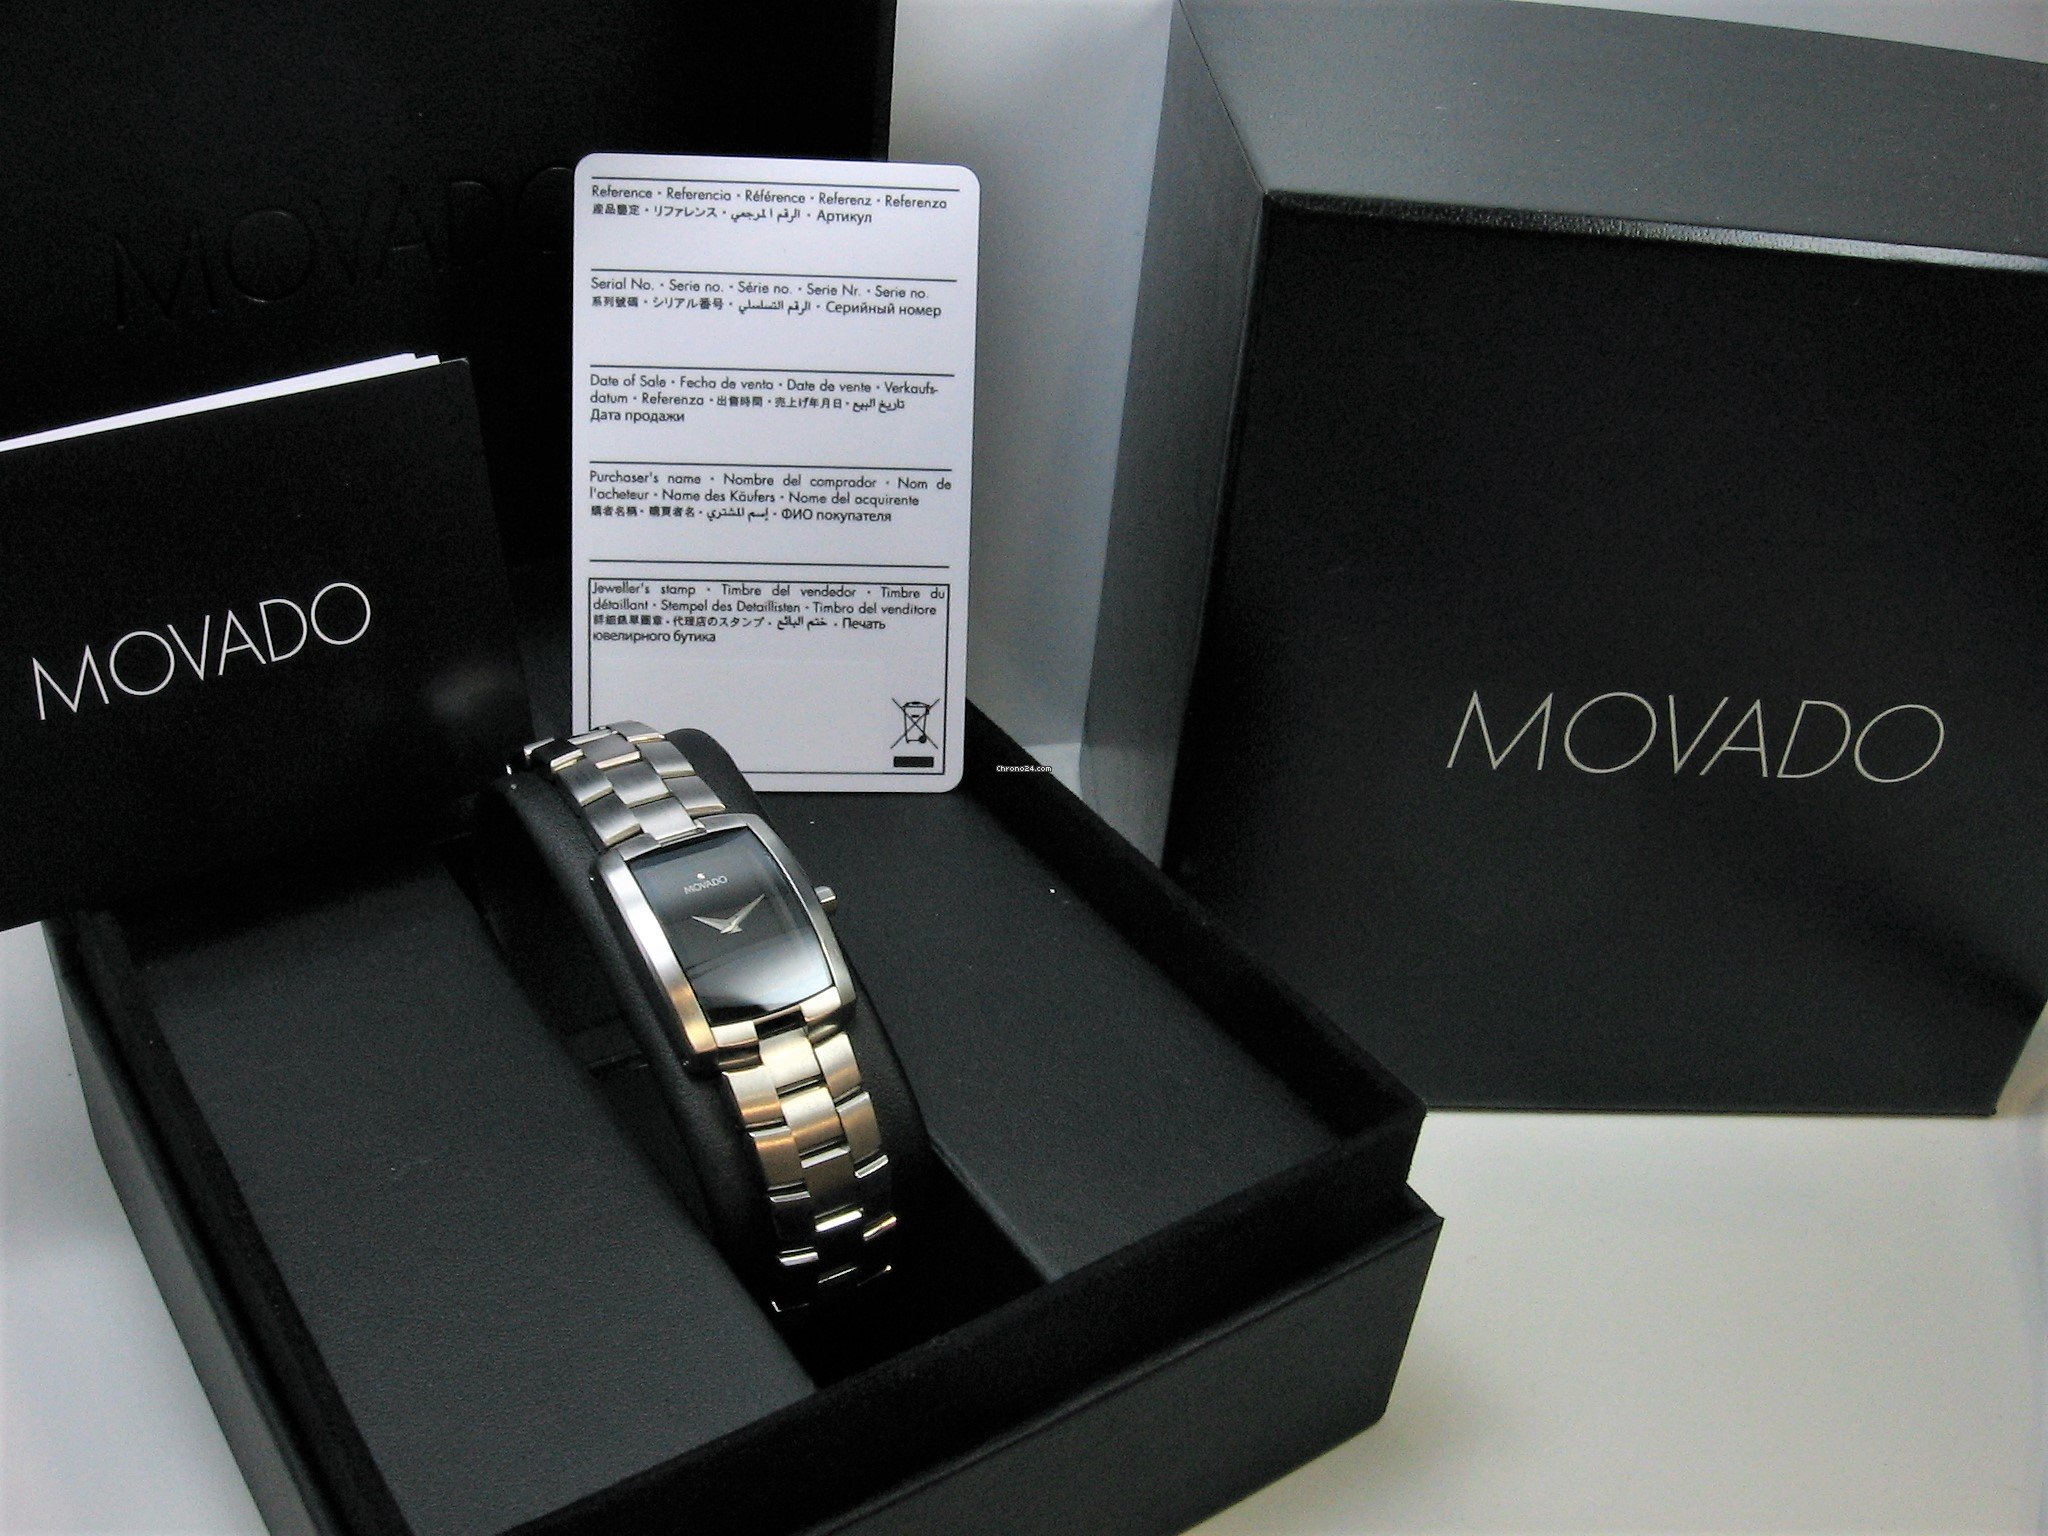 Movado Eliro For C 1 413 For Sale From A Seller On Chrono24